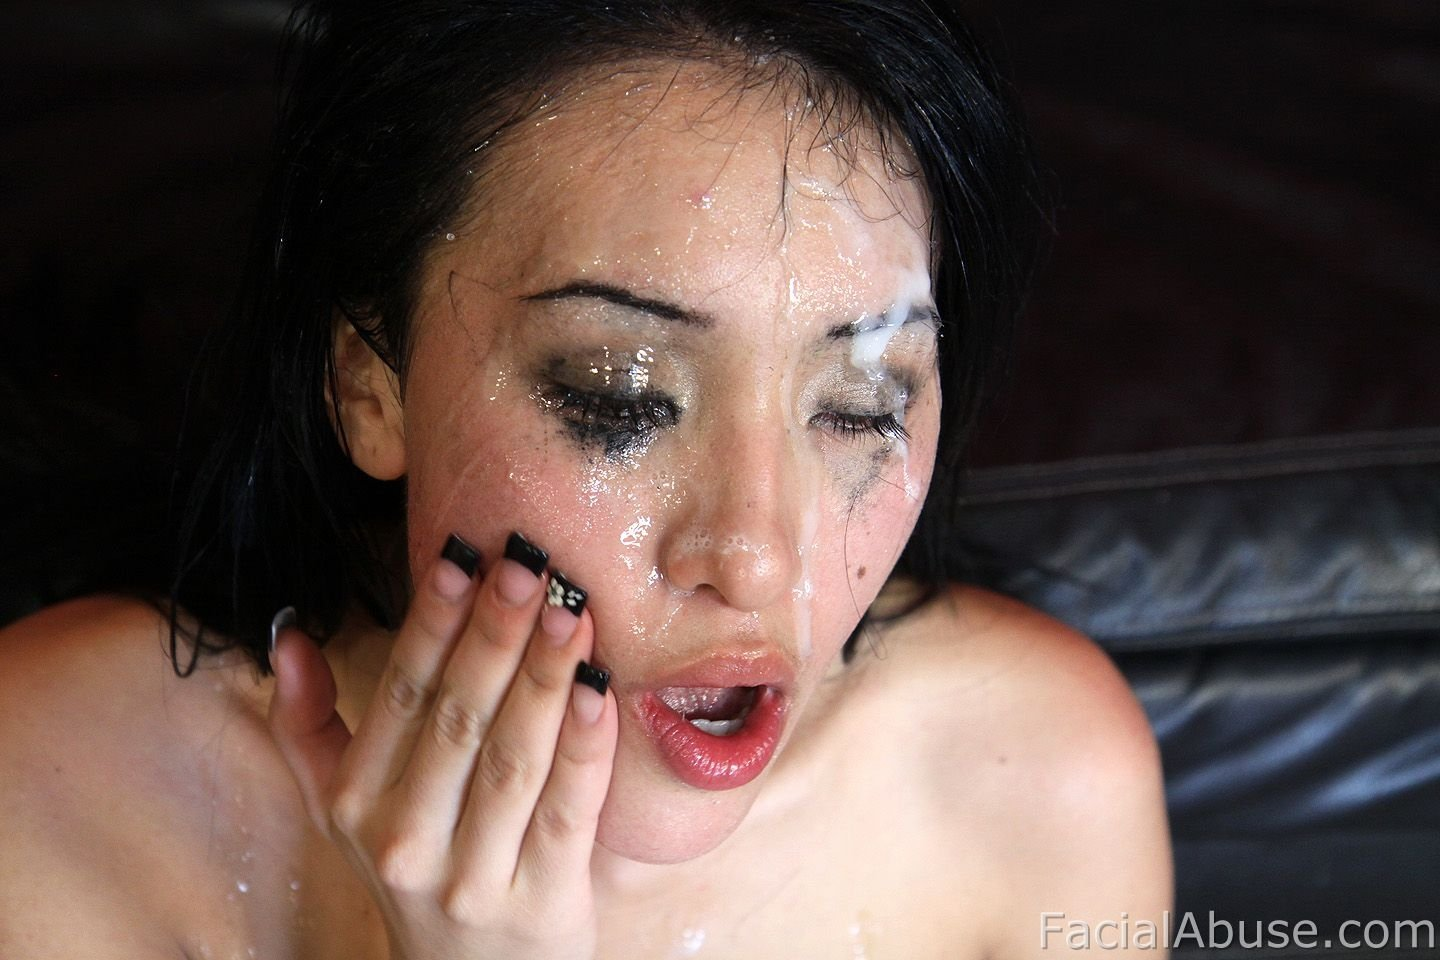 photos of women giving blow jobs